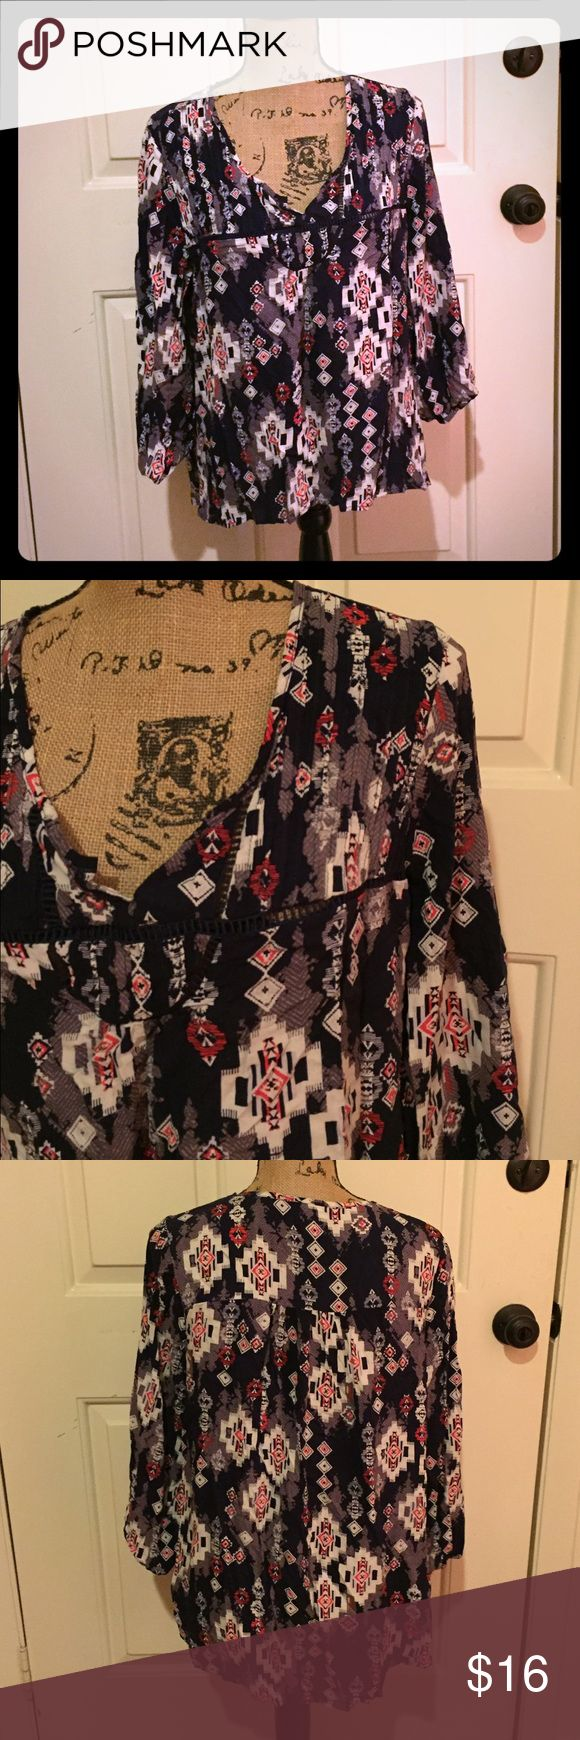 🆕 Mossimo Aztec blouse Super cute!!!!! Preloved but lots of life left! ❌Trades/Outside Transactions❌ 😻 friendly home 😻 💅🏼Serious buyers only, i.e. Please don't ask questions without intention of immediate purchase💅🏼 ❤️Bundles of 5 or more listings get HALF OFF YOUR WHOLE PURCHASE!❤️-separate listing must be made. Please ask!  📦Buyer pays extra shipping when applicable📦 💓Some colors vary in person! 😘thank you! Mossimo Supply Co Tops Blouses